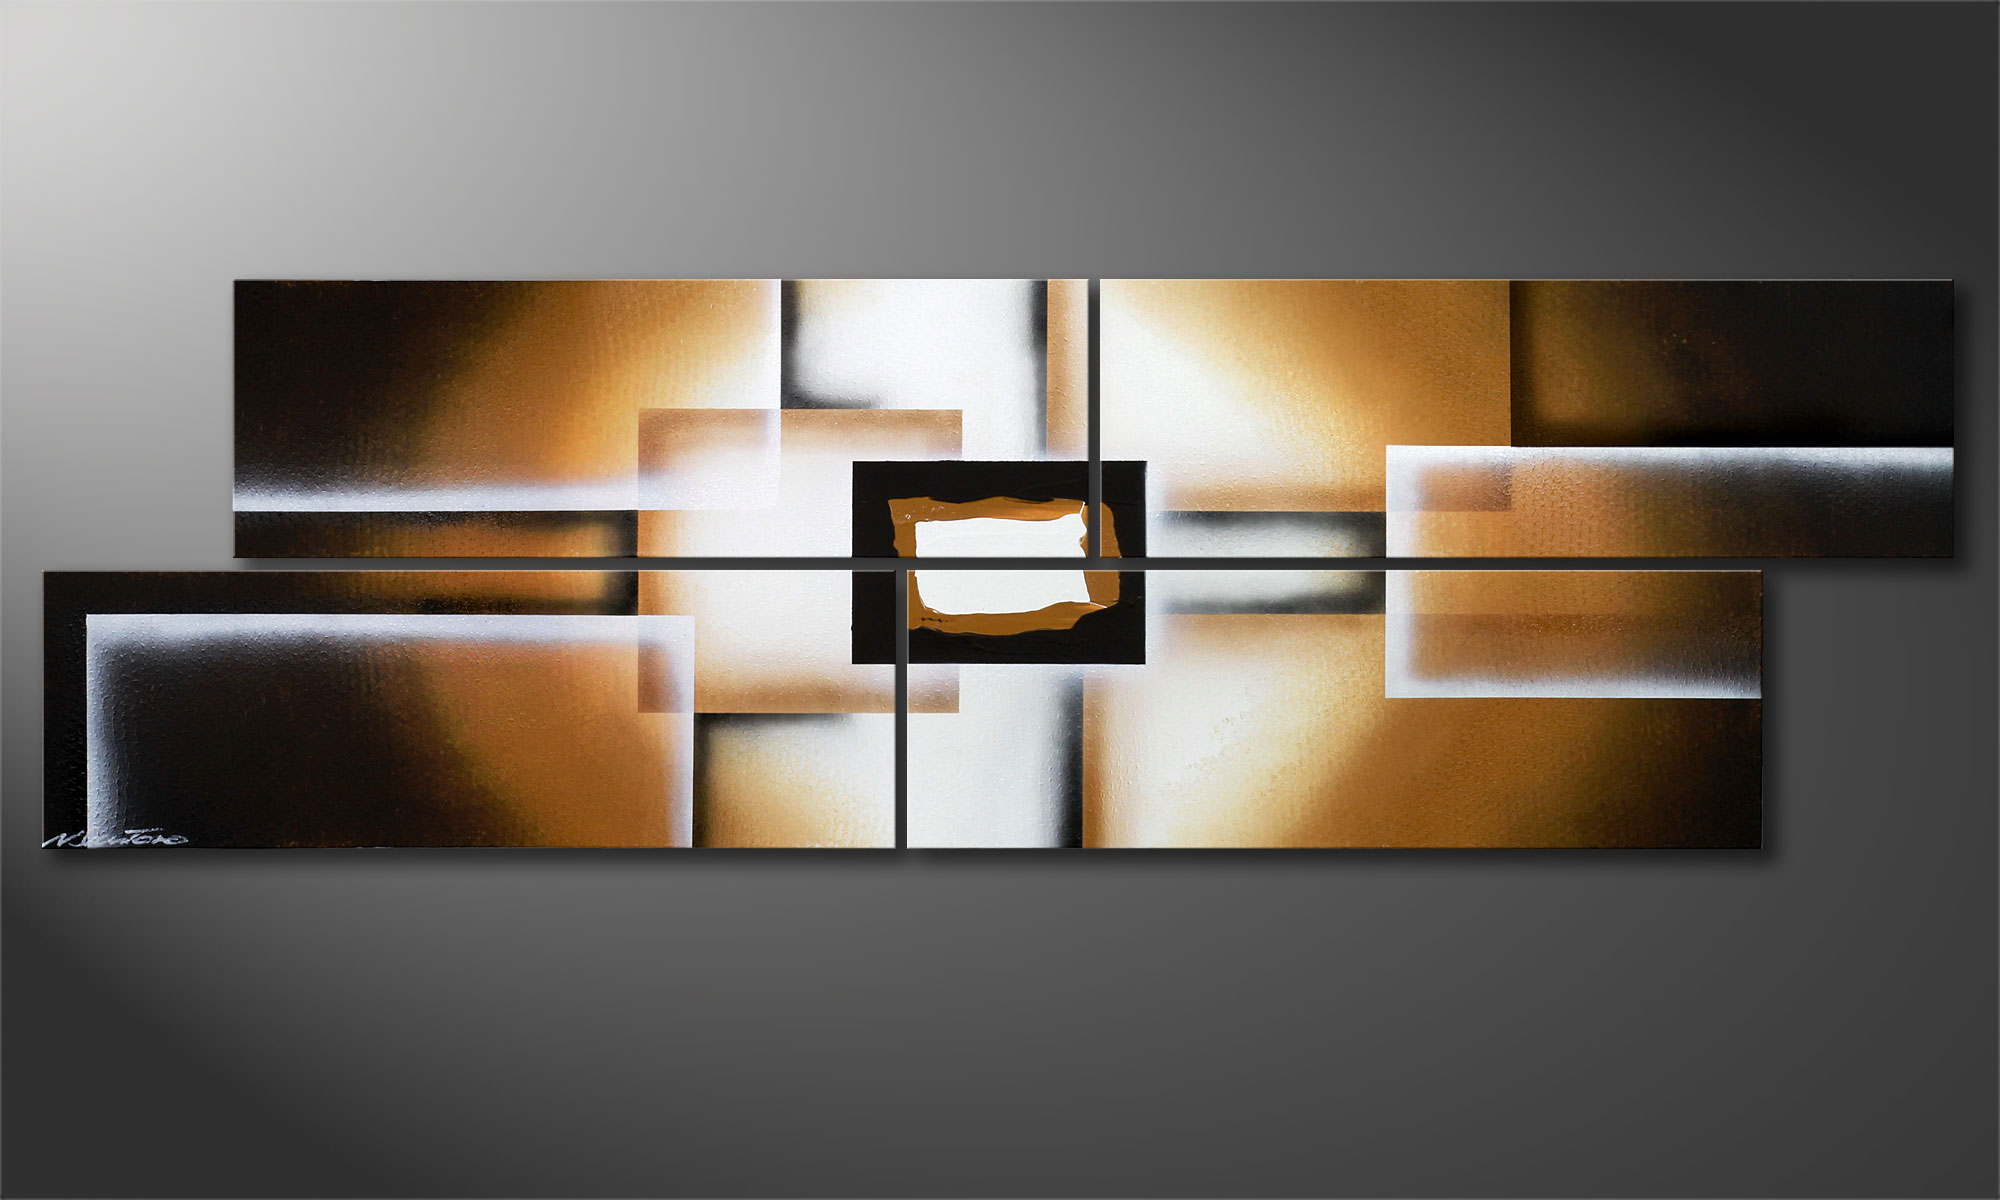 Das moderne bild earth construction 200x60cm wandbilder xxl for Moderne wandbilder